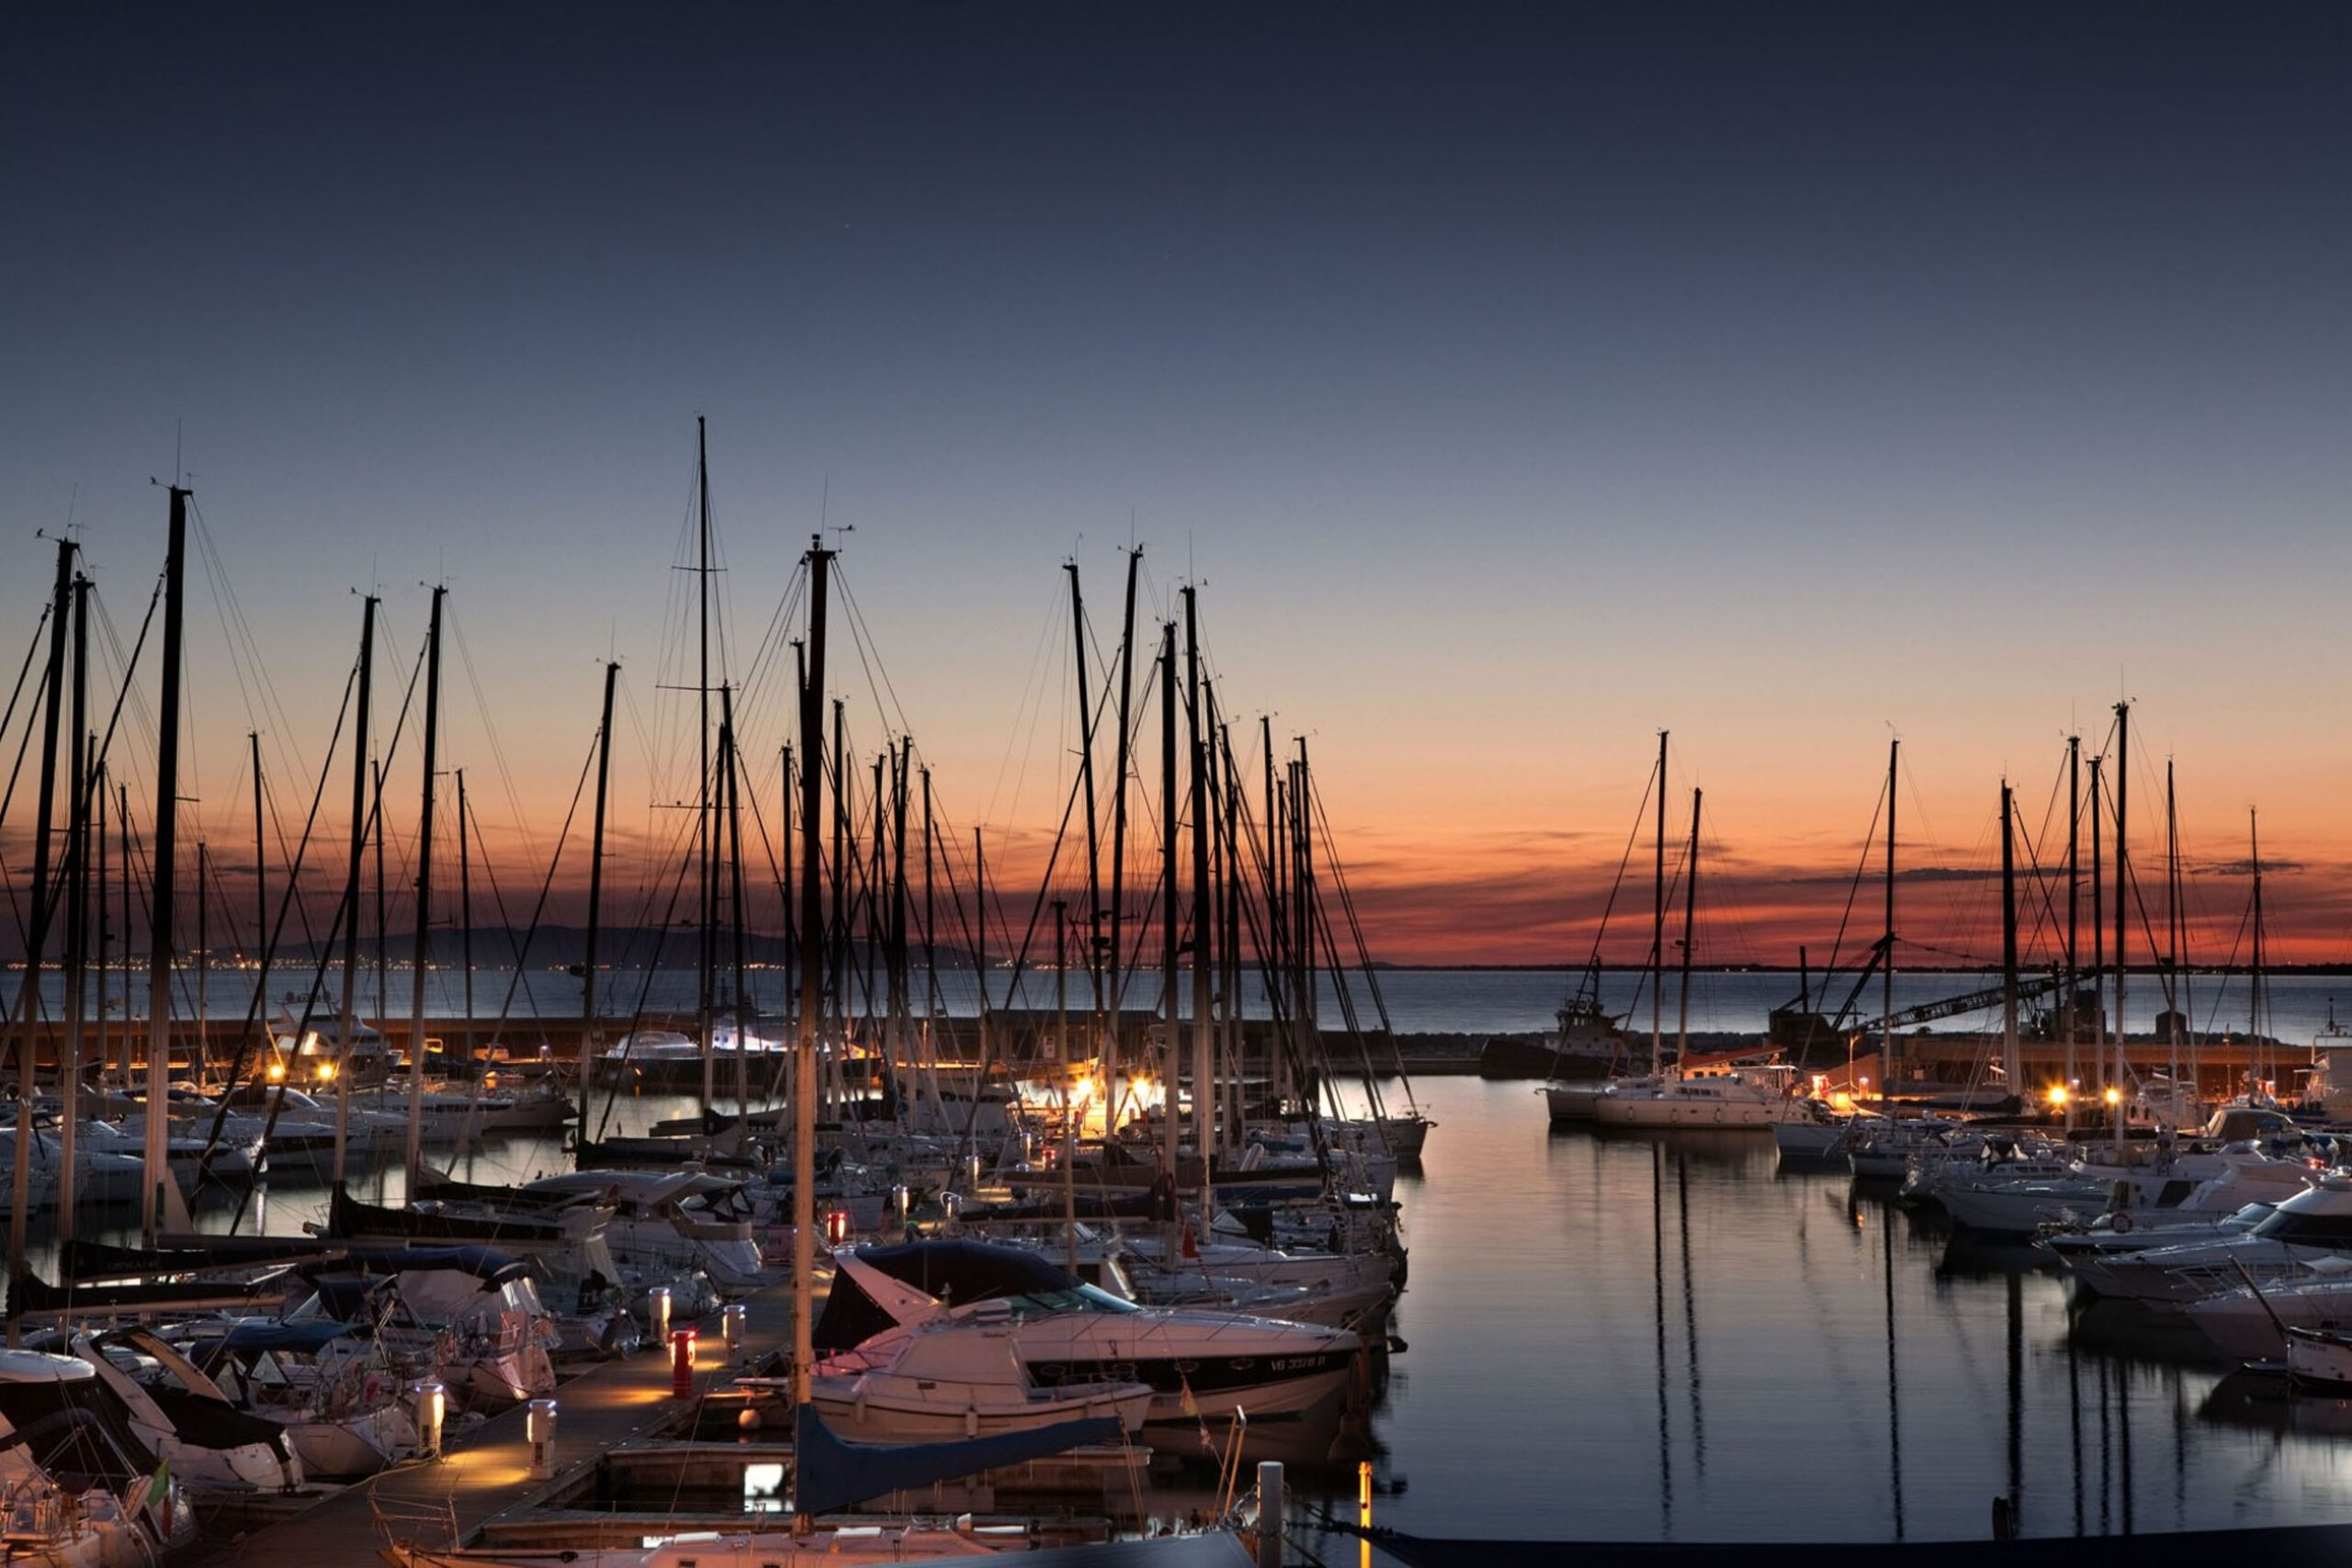 Marinas in Spain & Impact for Yachts during COVID-19